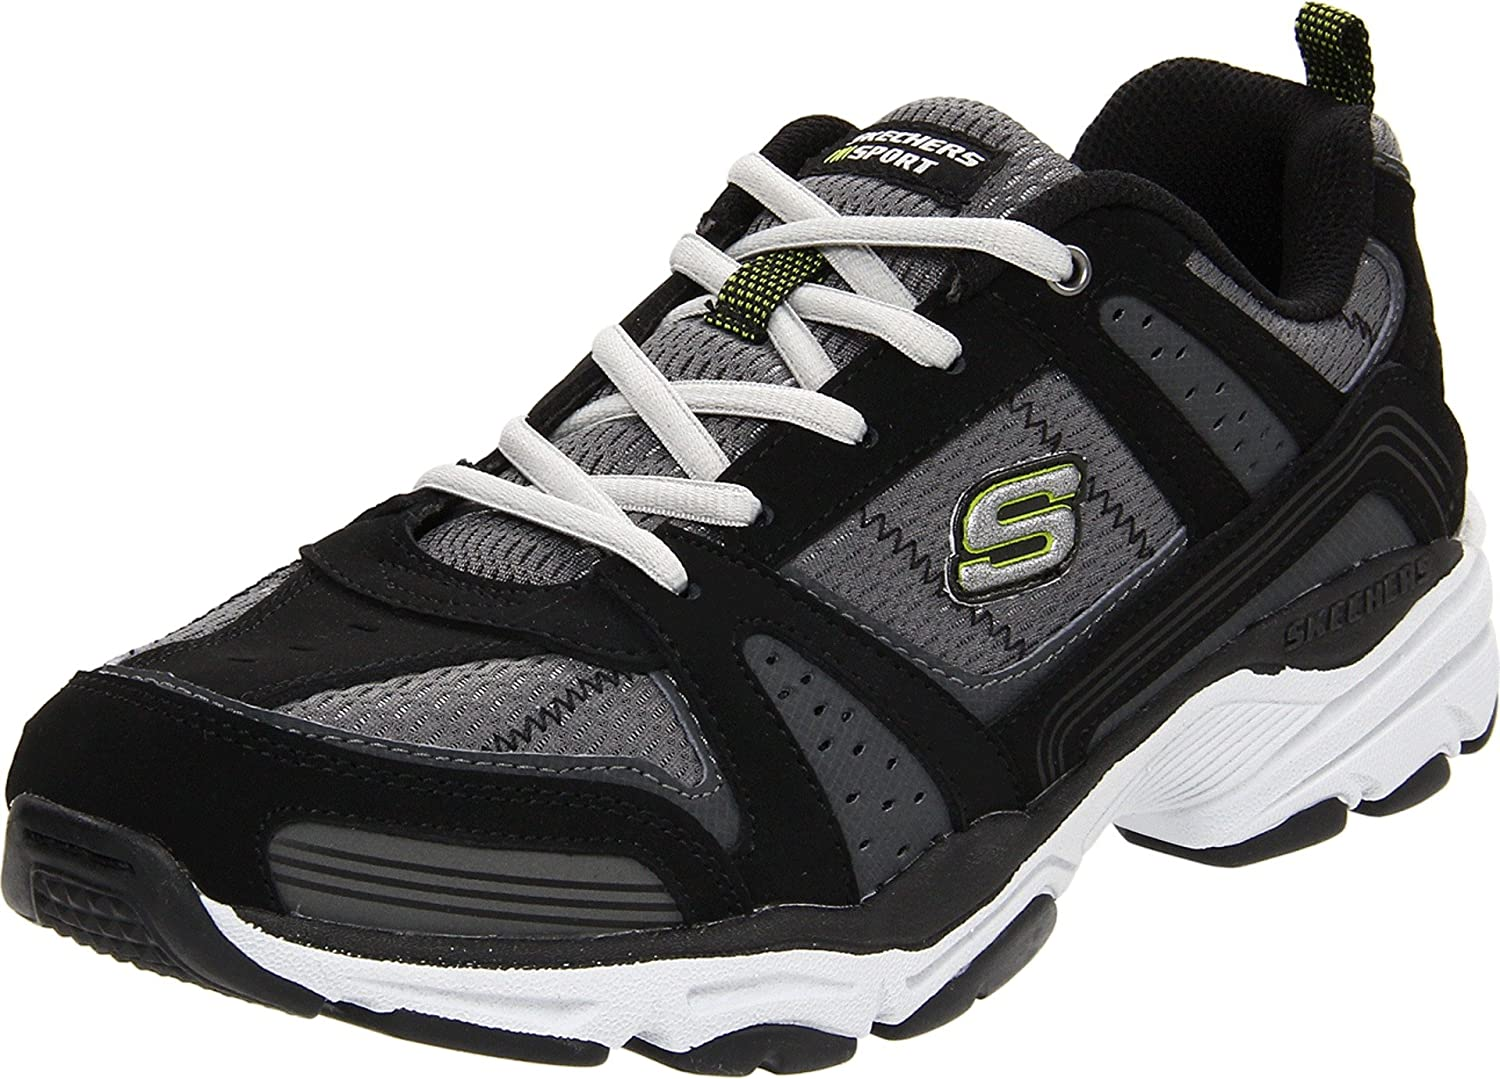 Skechers Lifestyle | Outdoor Equipped